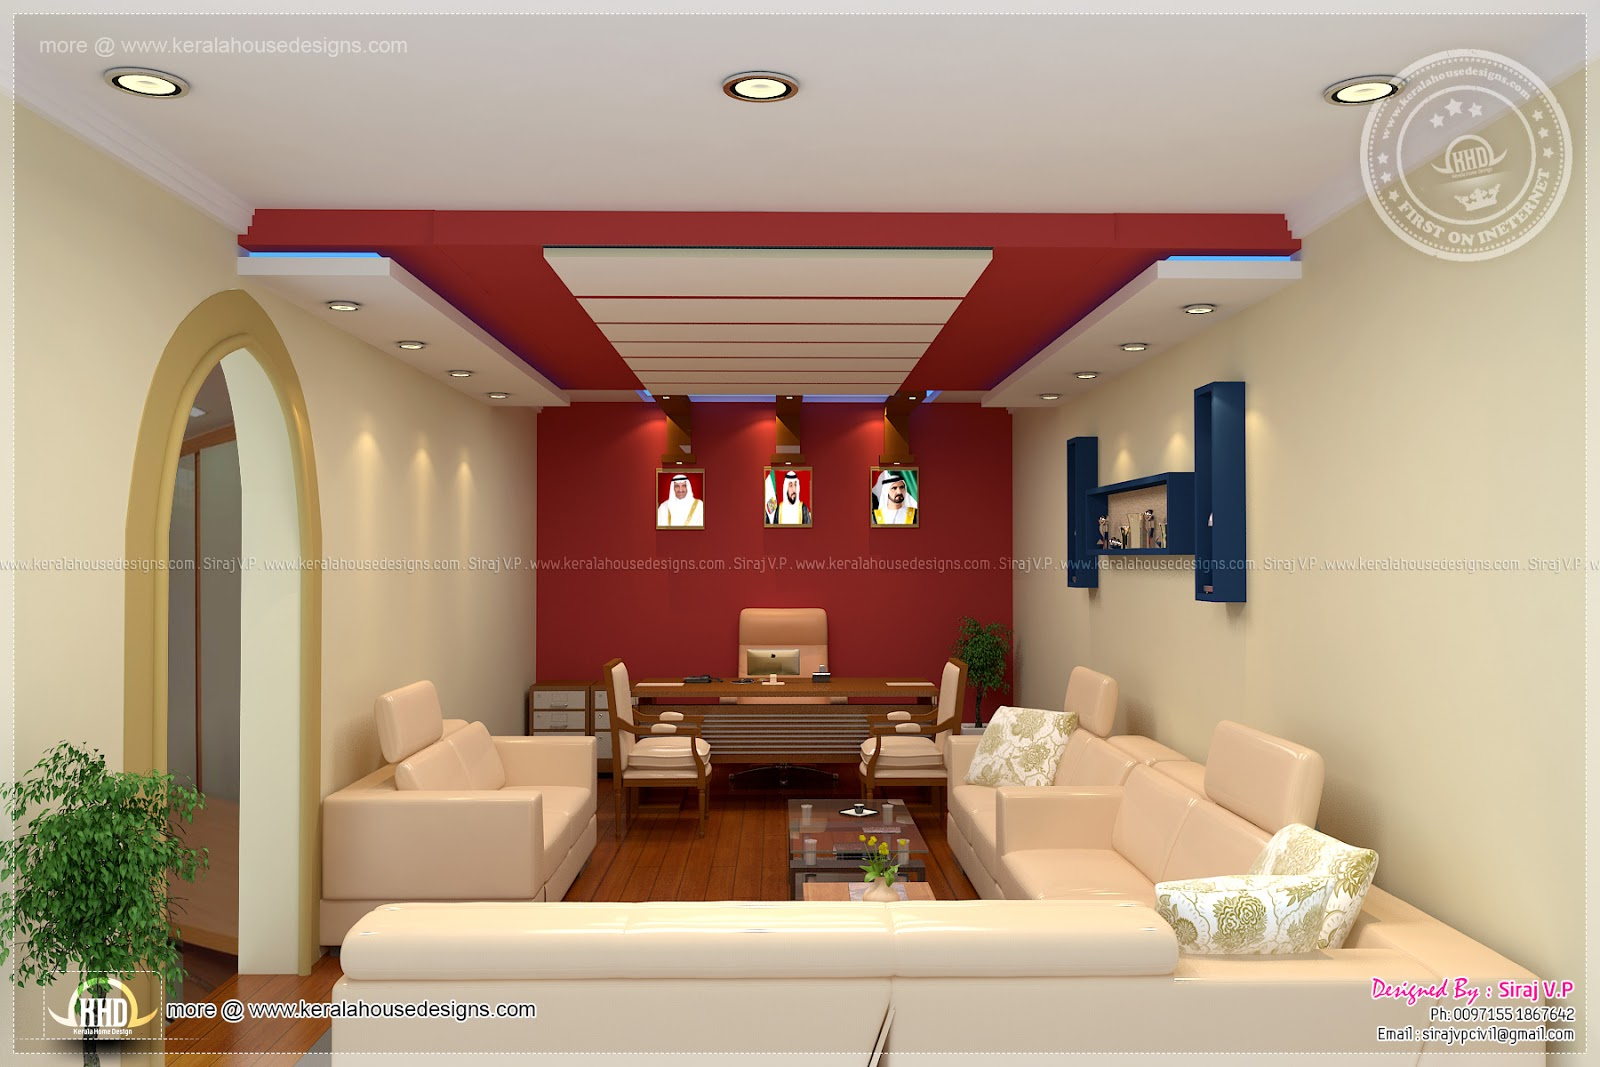 Home office interior design by Siraj VP  Kerala home